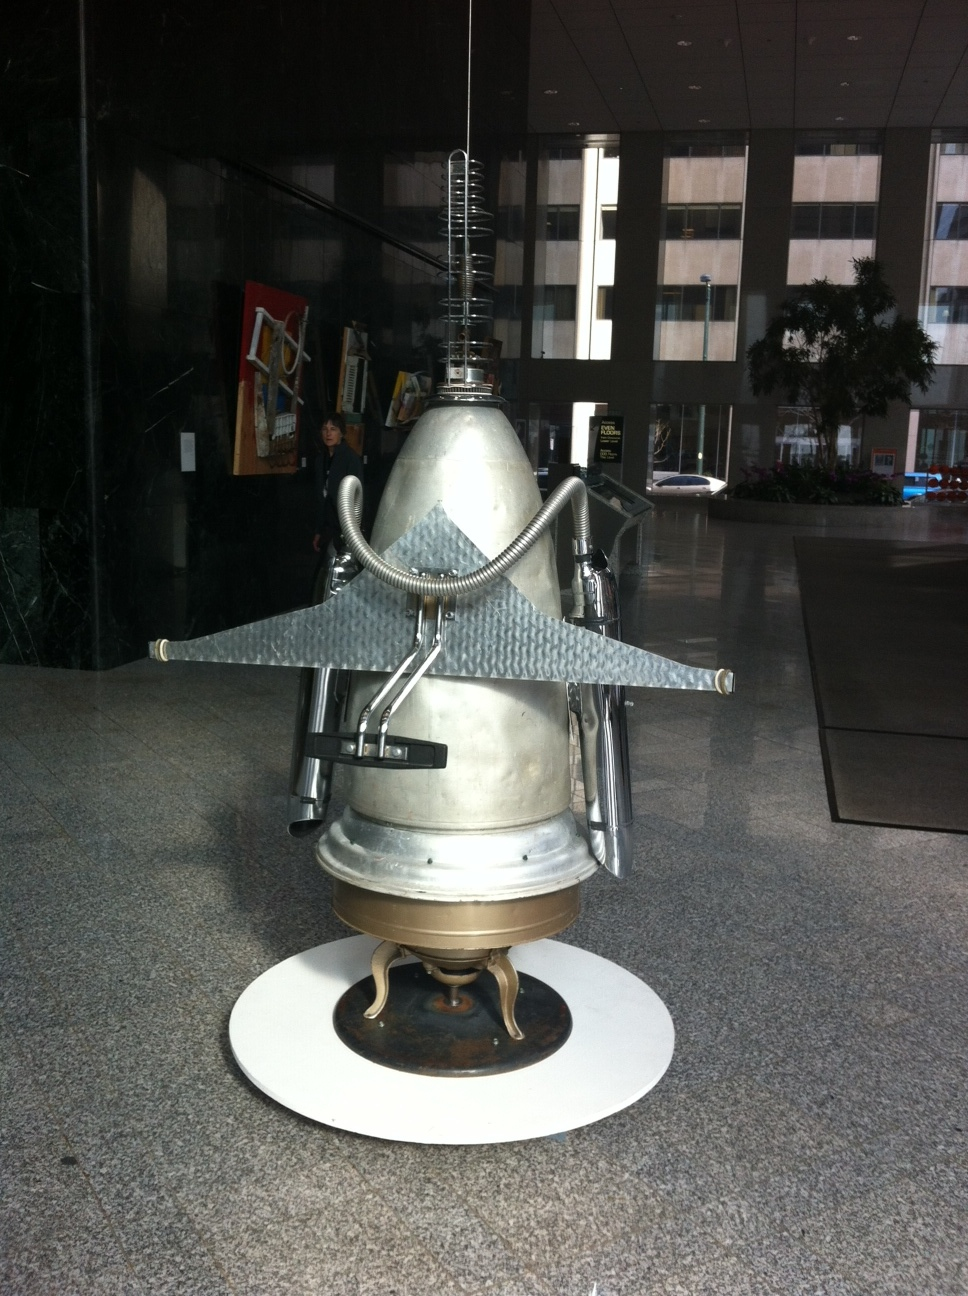 Jimmy Descant is famous for his robots and spacemen made from household appliance parts.